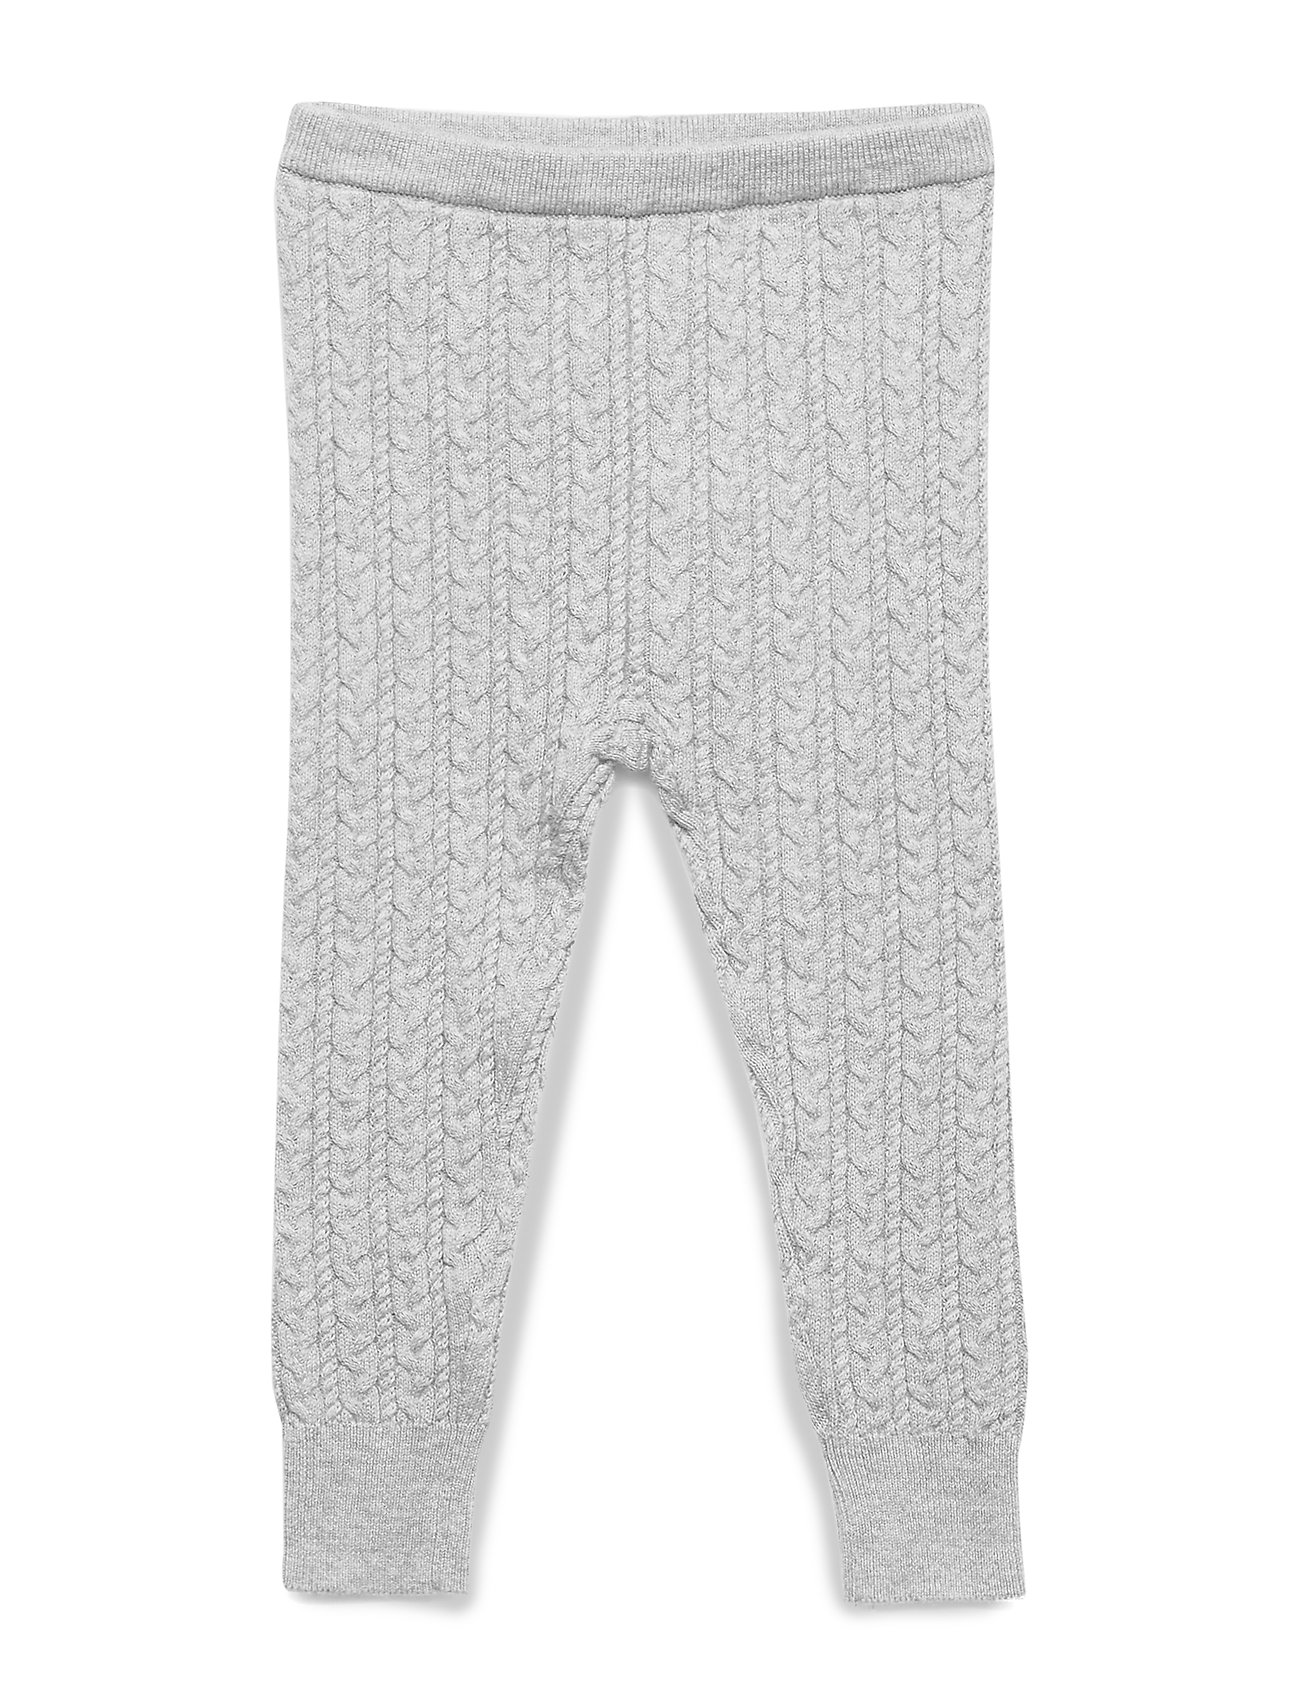 GAP Baby Cable-Knit Sweater Leggings - B10 GREY HEATHER